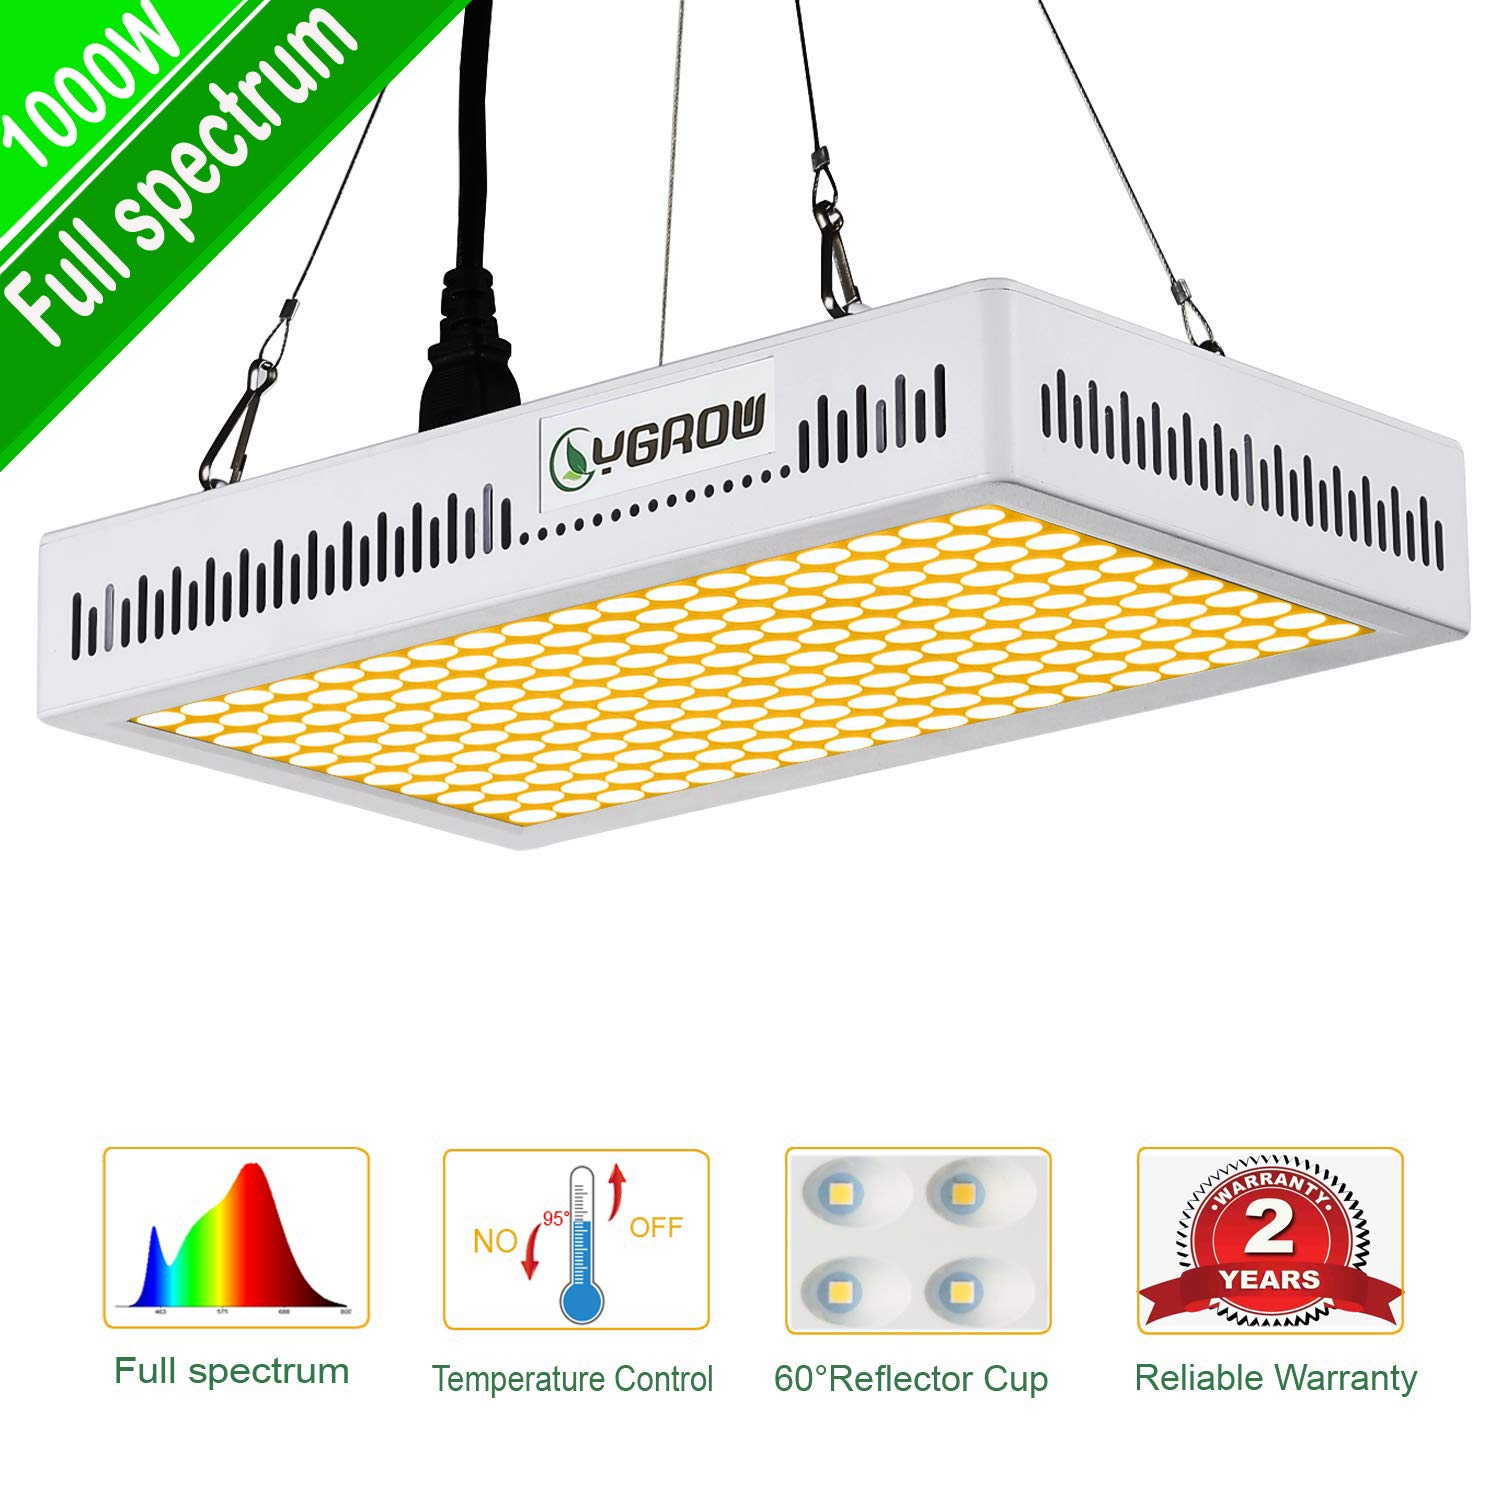 LED Grow Lights Full Spectrum,1000W YGROW Update Light Plant Bulbs Growing Light Bulb for Indoor Plants Veg and Flower with Heatproof Casing 3500K by YGROW